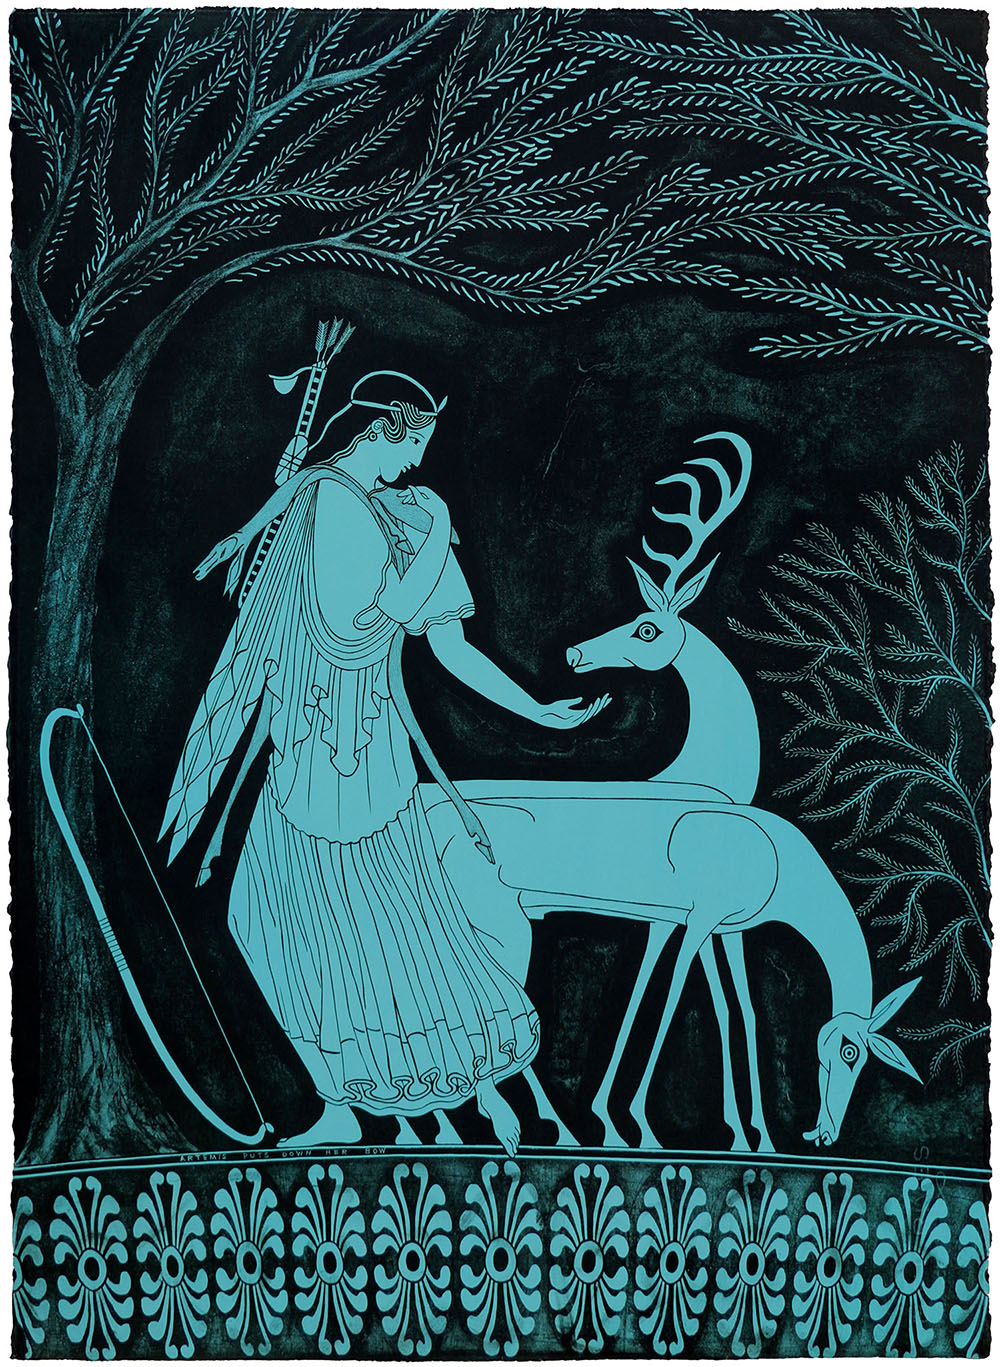 'Artemis Puts Down Her Bow', 2018 560 x 760 x 50mm. Lithograph, Edition of 24.